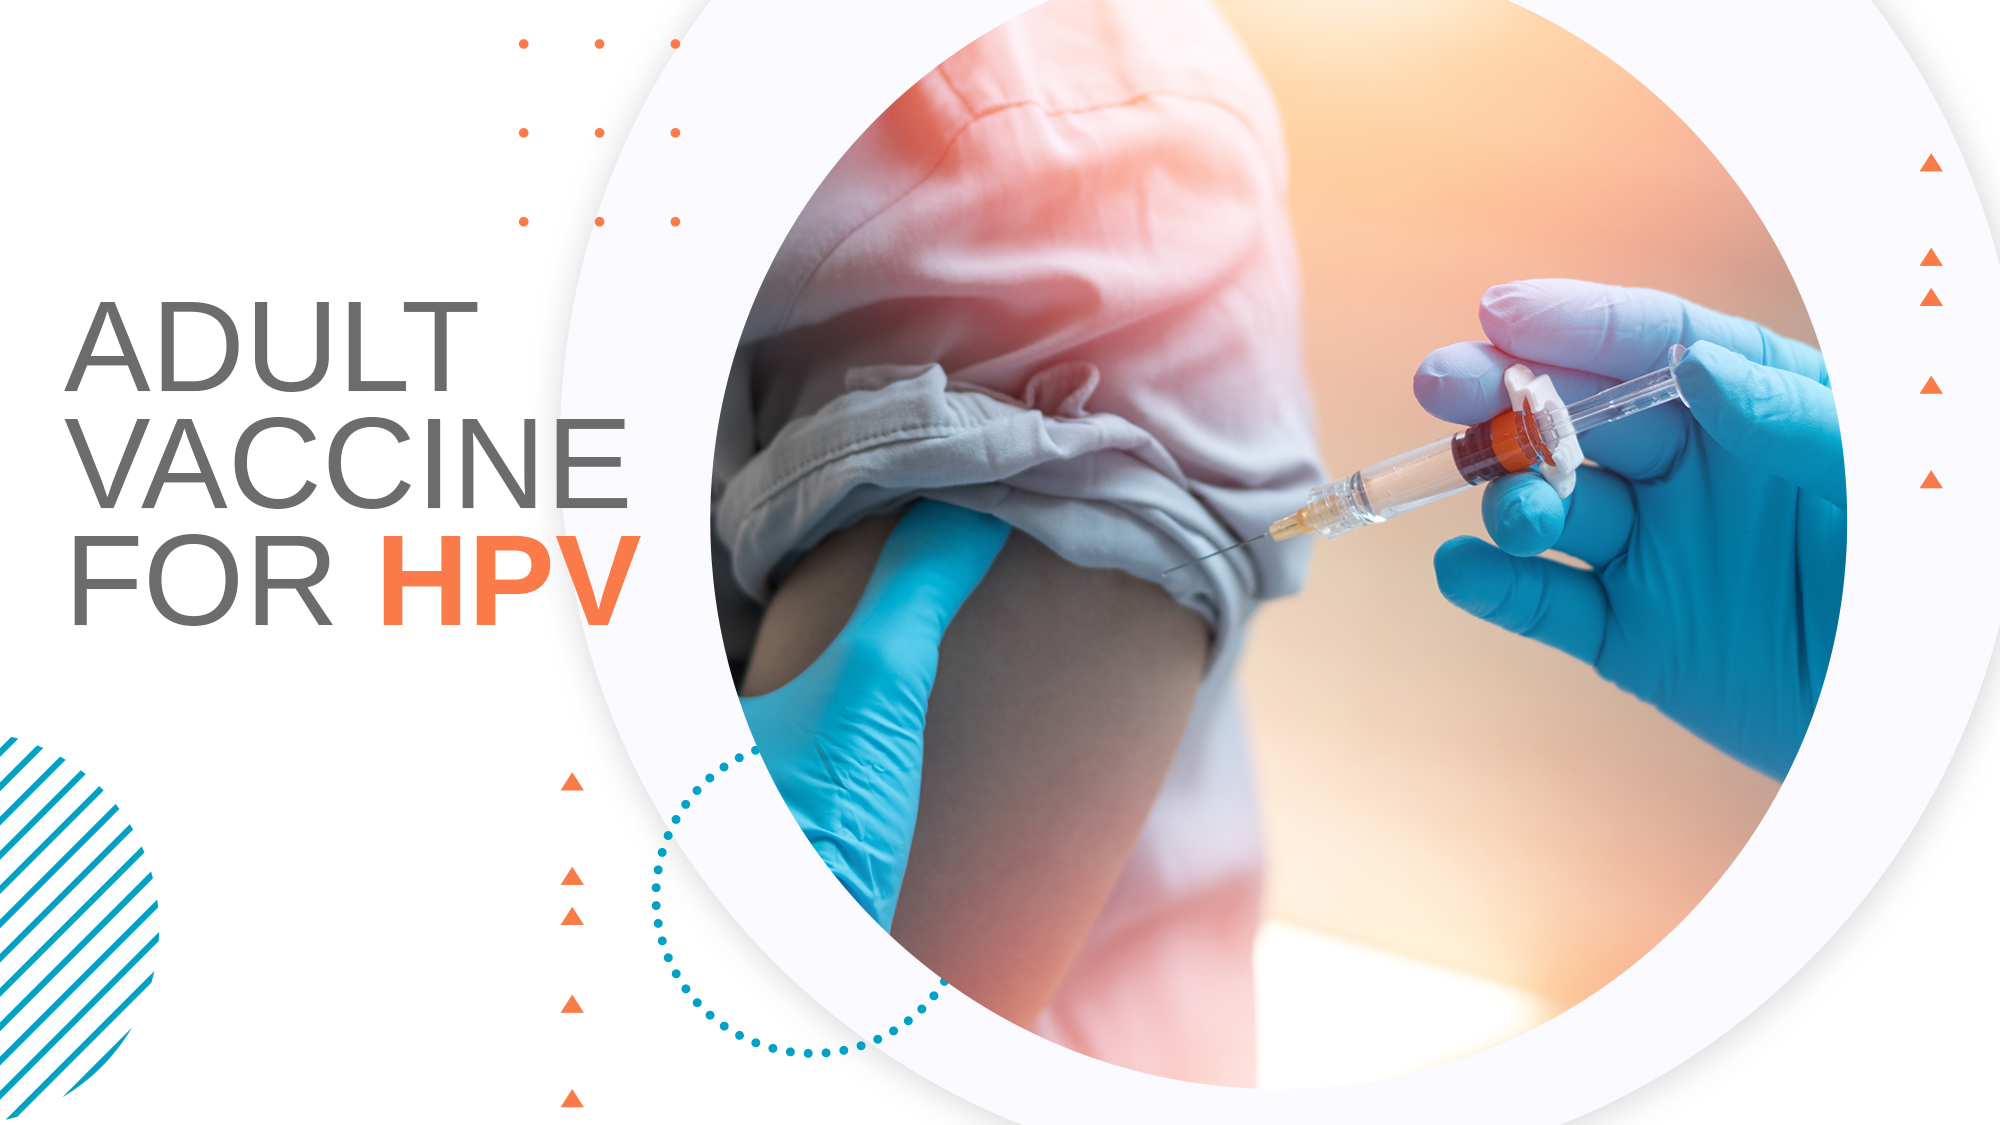 HPV Vaccine for Adults